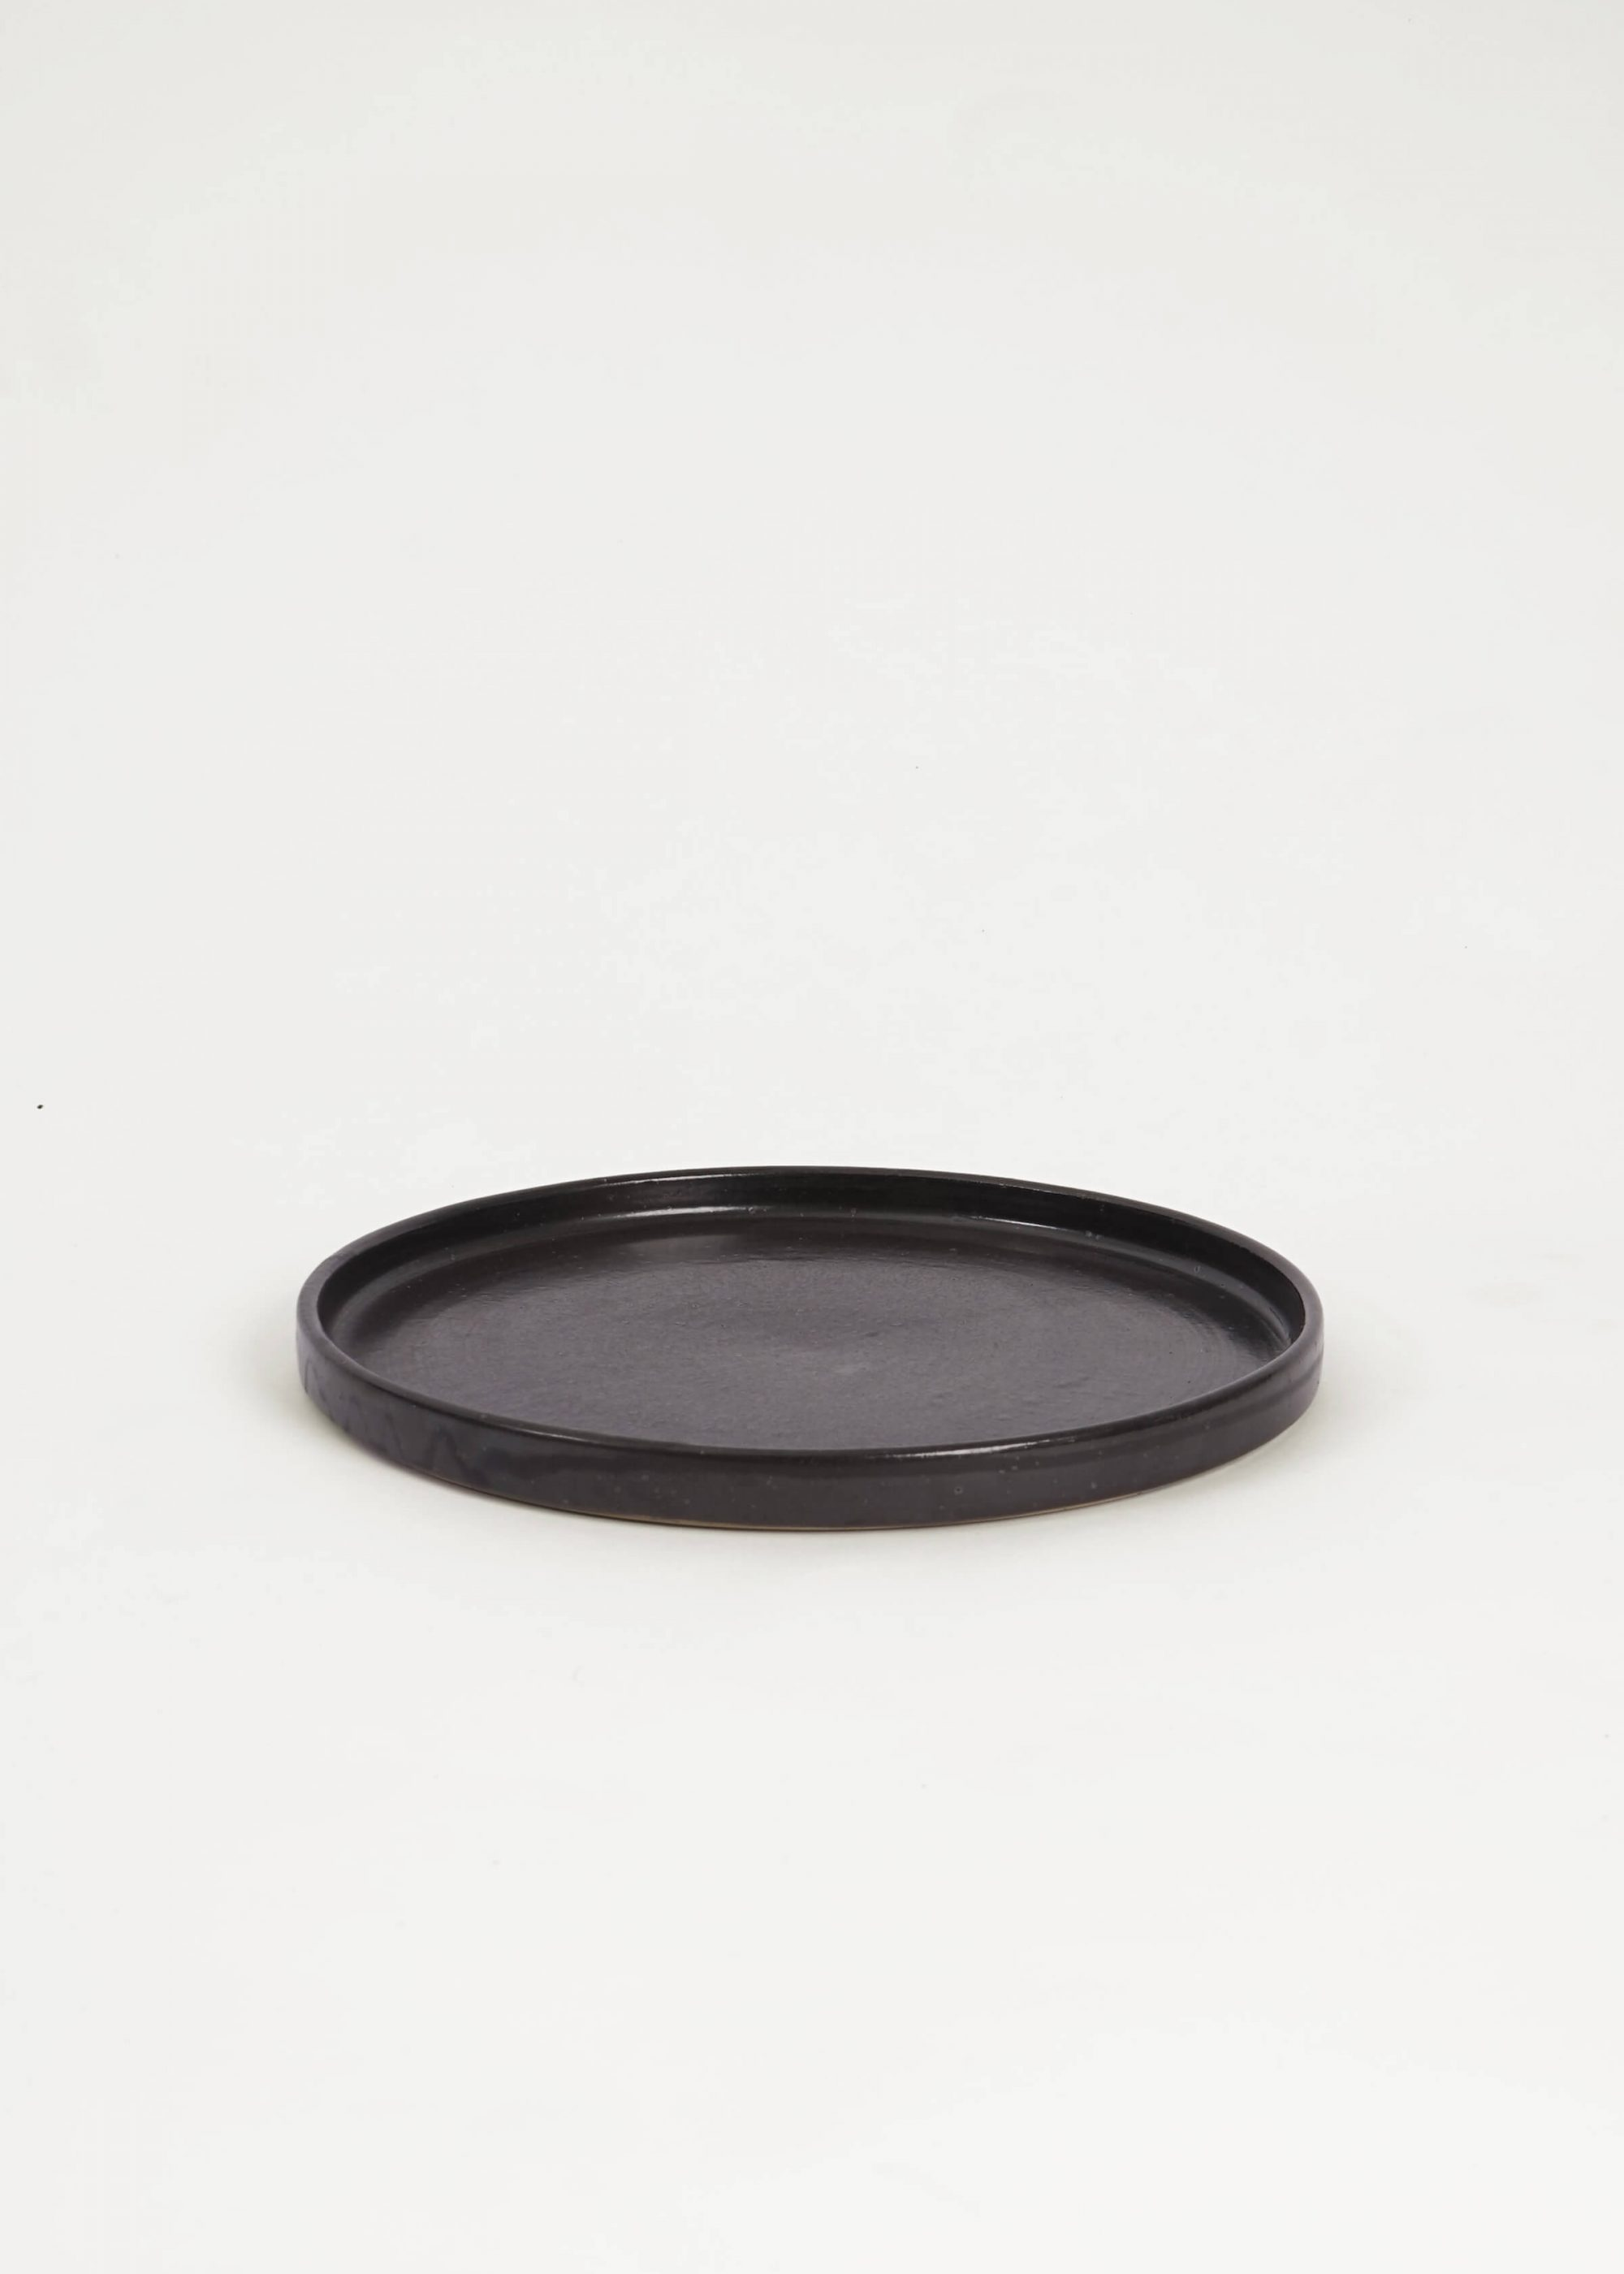 Product image for N° ICC6 High Rim Plate